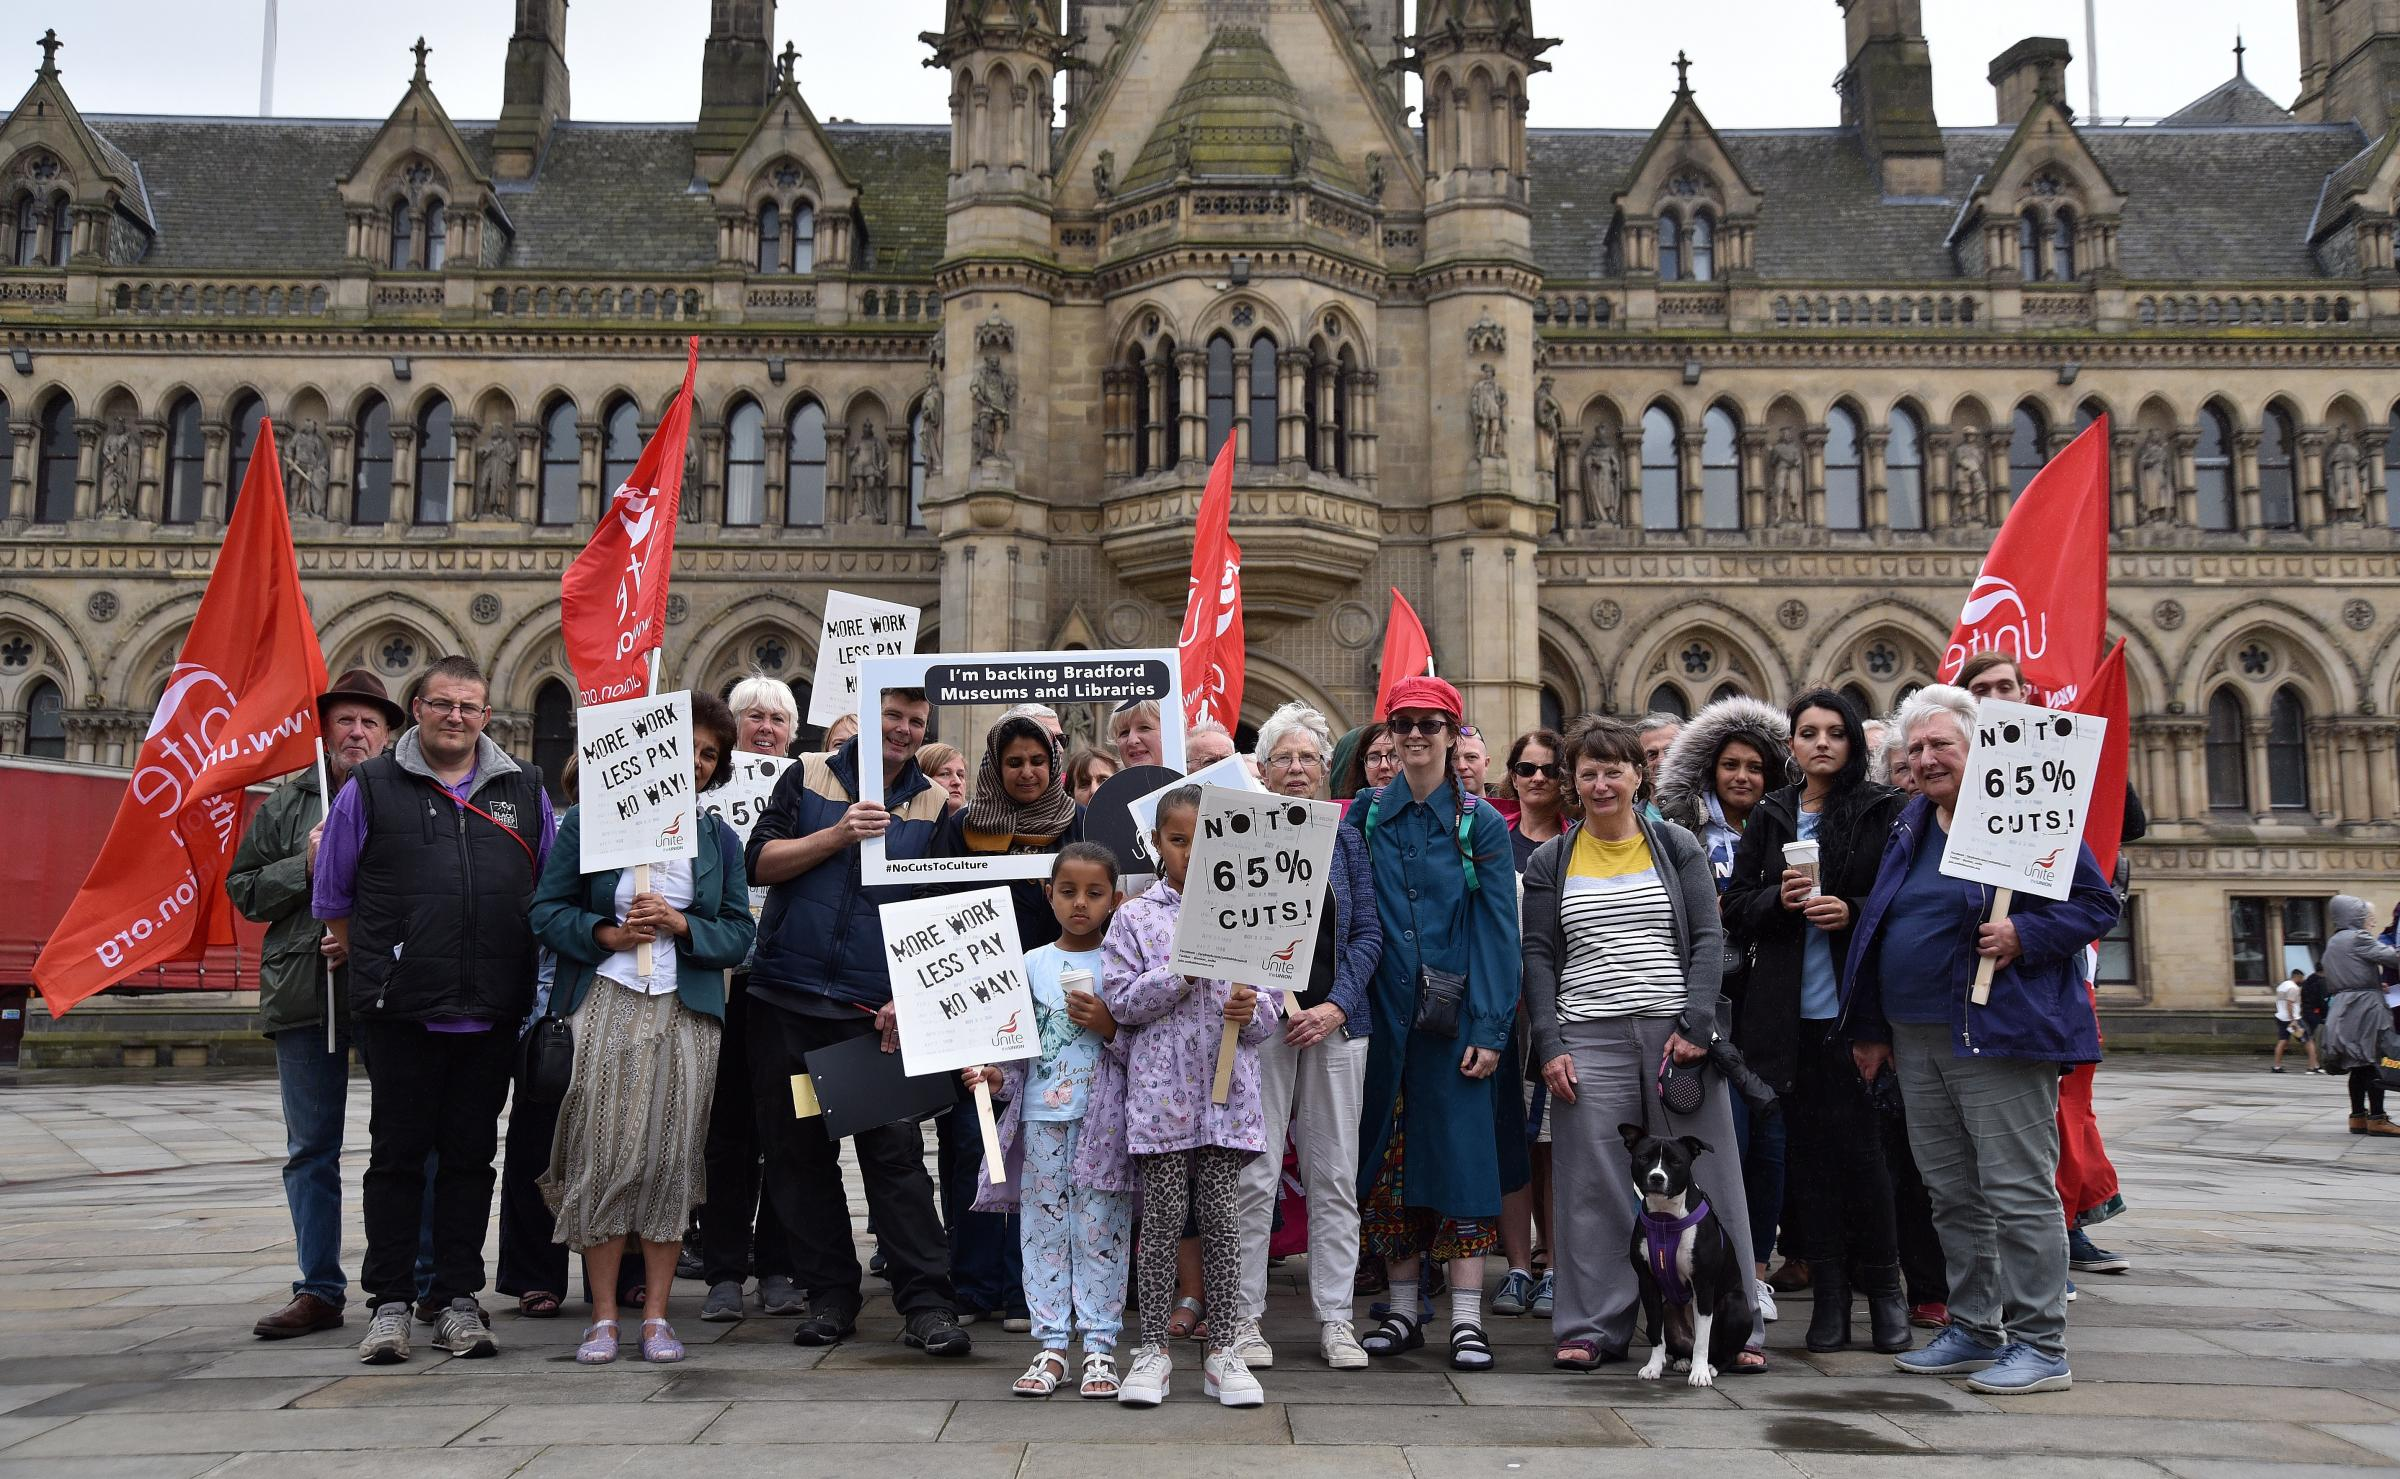 Unite members rally in Bradford in face of cuts to museums and libraries